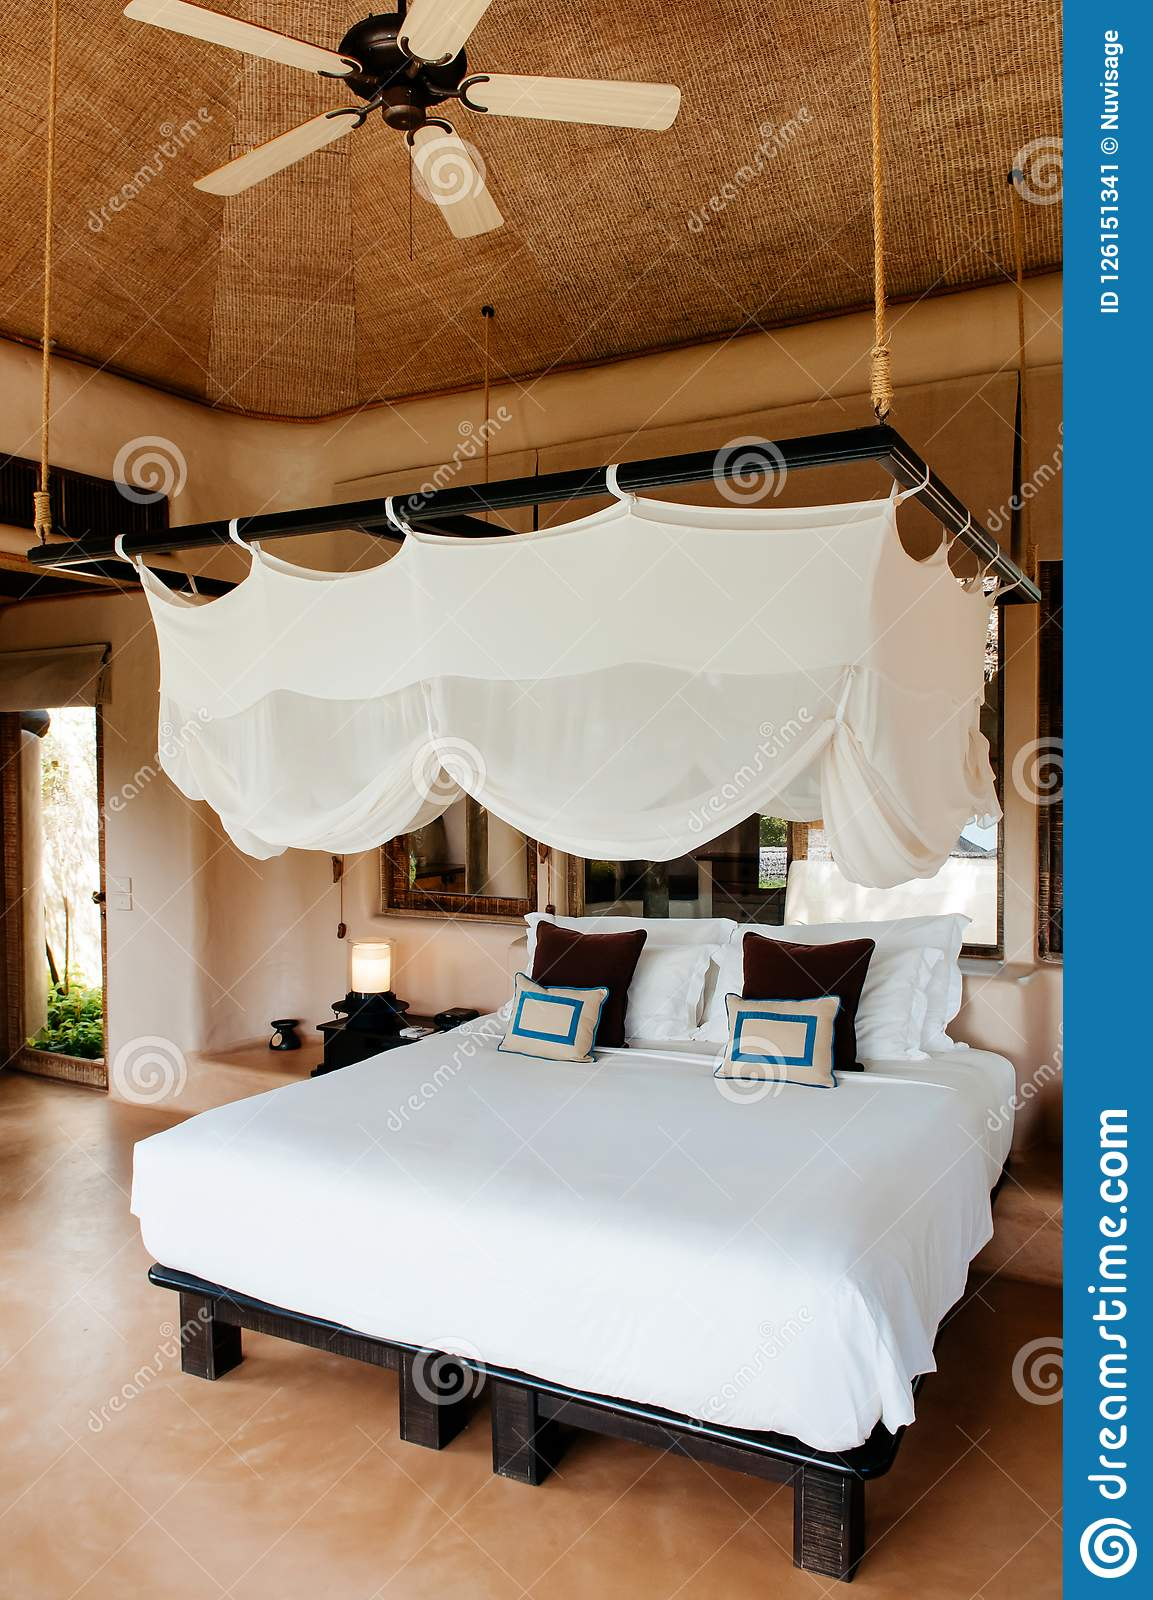 Tropical Resort Bedroom With Wooden Bed Stylish Mosquito Net An